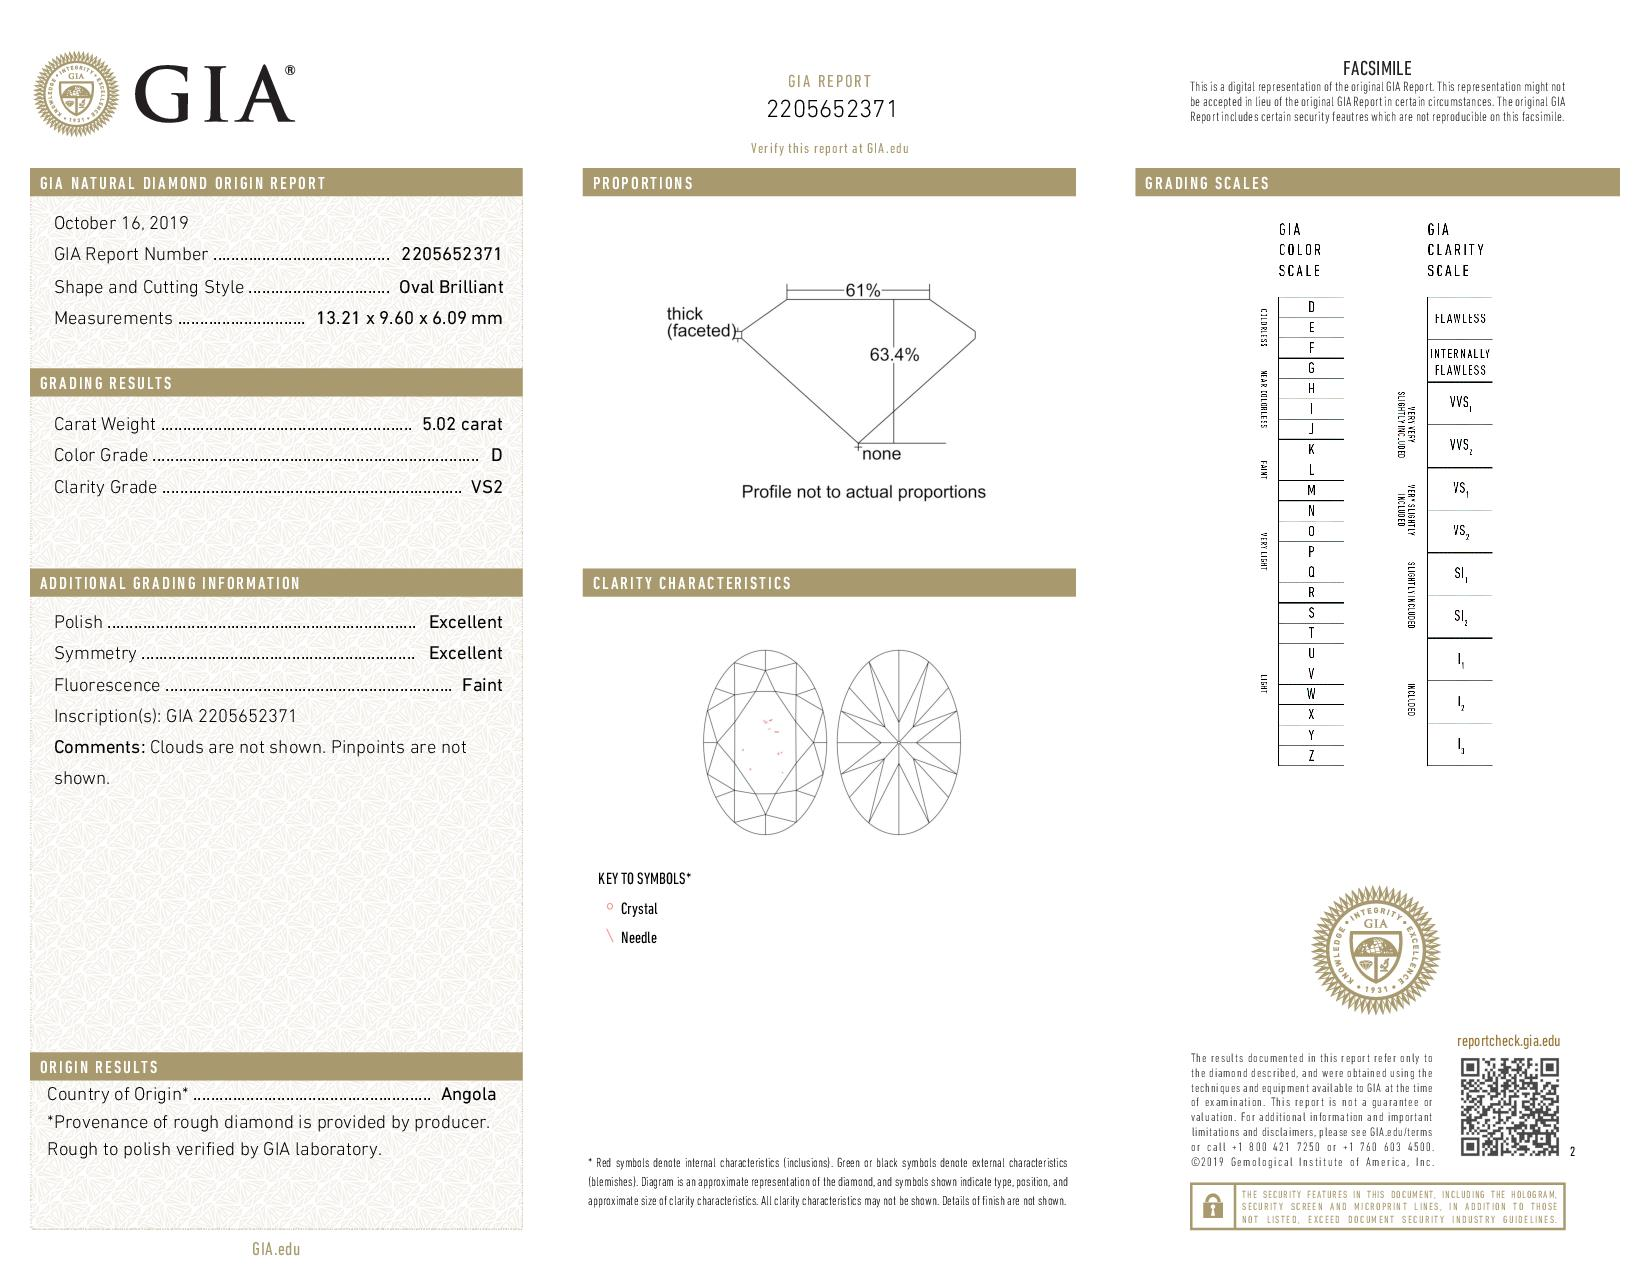 This is a 5.02 carat oval shape, D color, VS2 clarity natural diamond accompanied by a GIA grading report.